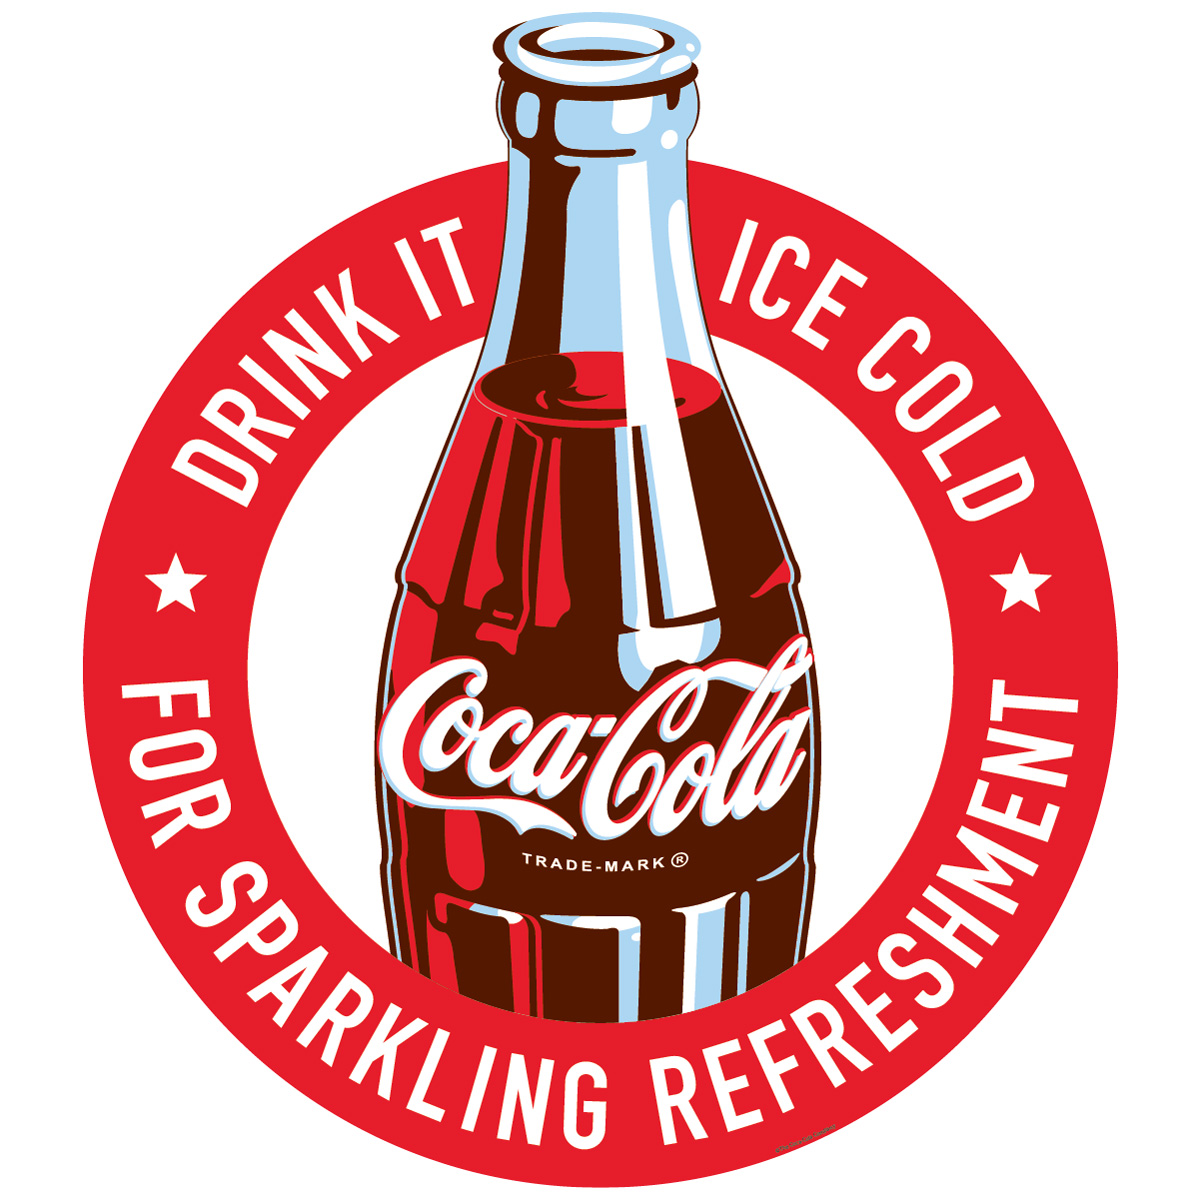 Coca Cola Drink It Ice Cold Sparkling Refreshment Decal At Retro Planet